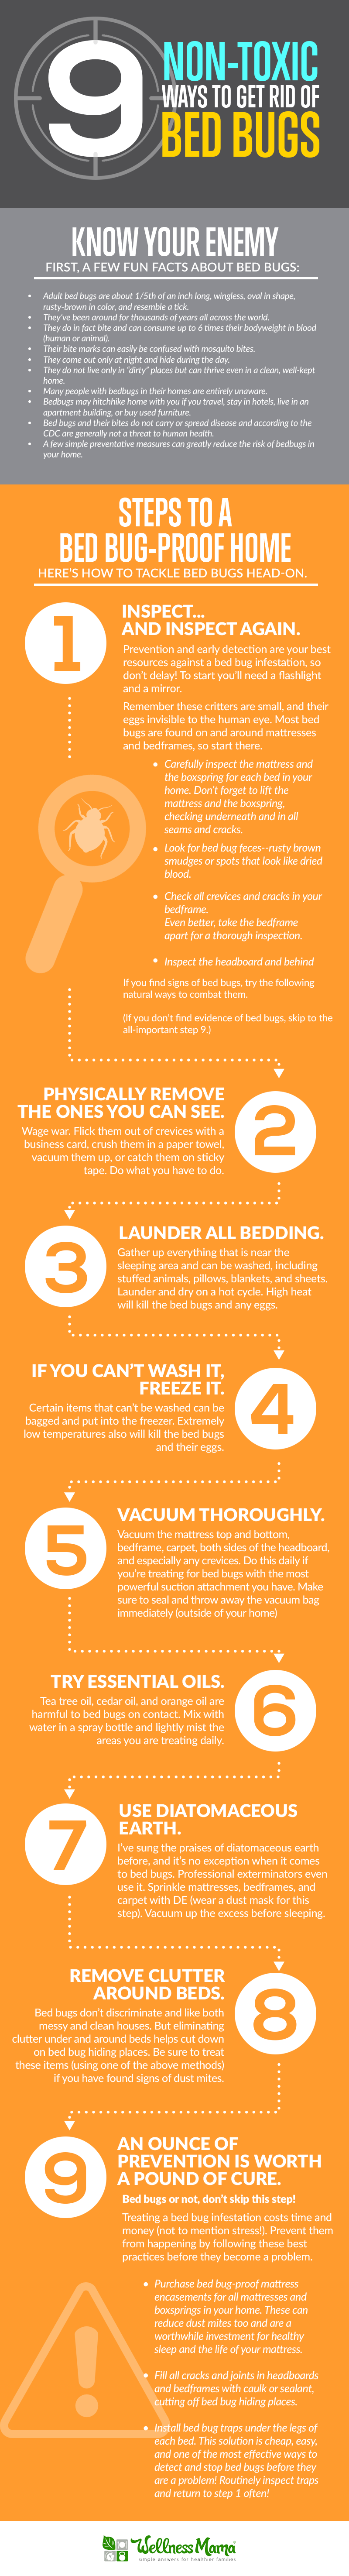 How to get rid of bed bugs 9 non toxic options bed bugs bites how to not let the bed bugs bite and keep them out of your house killing ccuart Choice Image